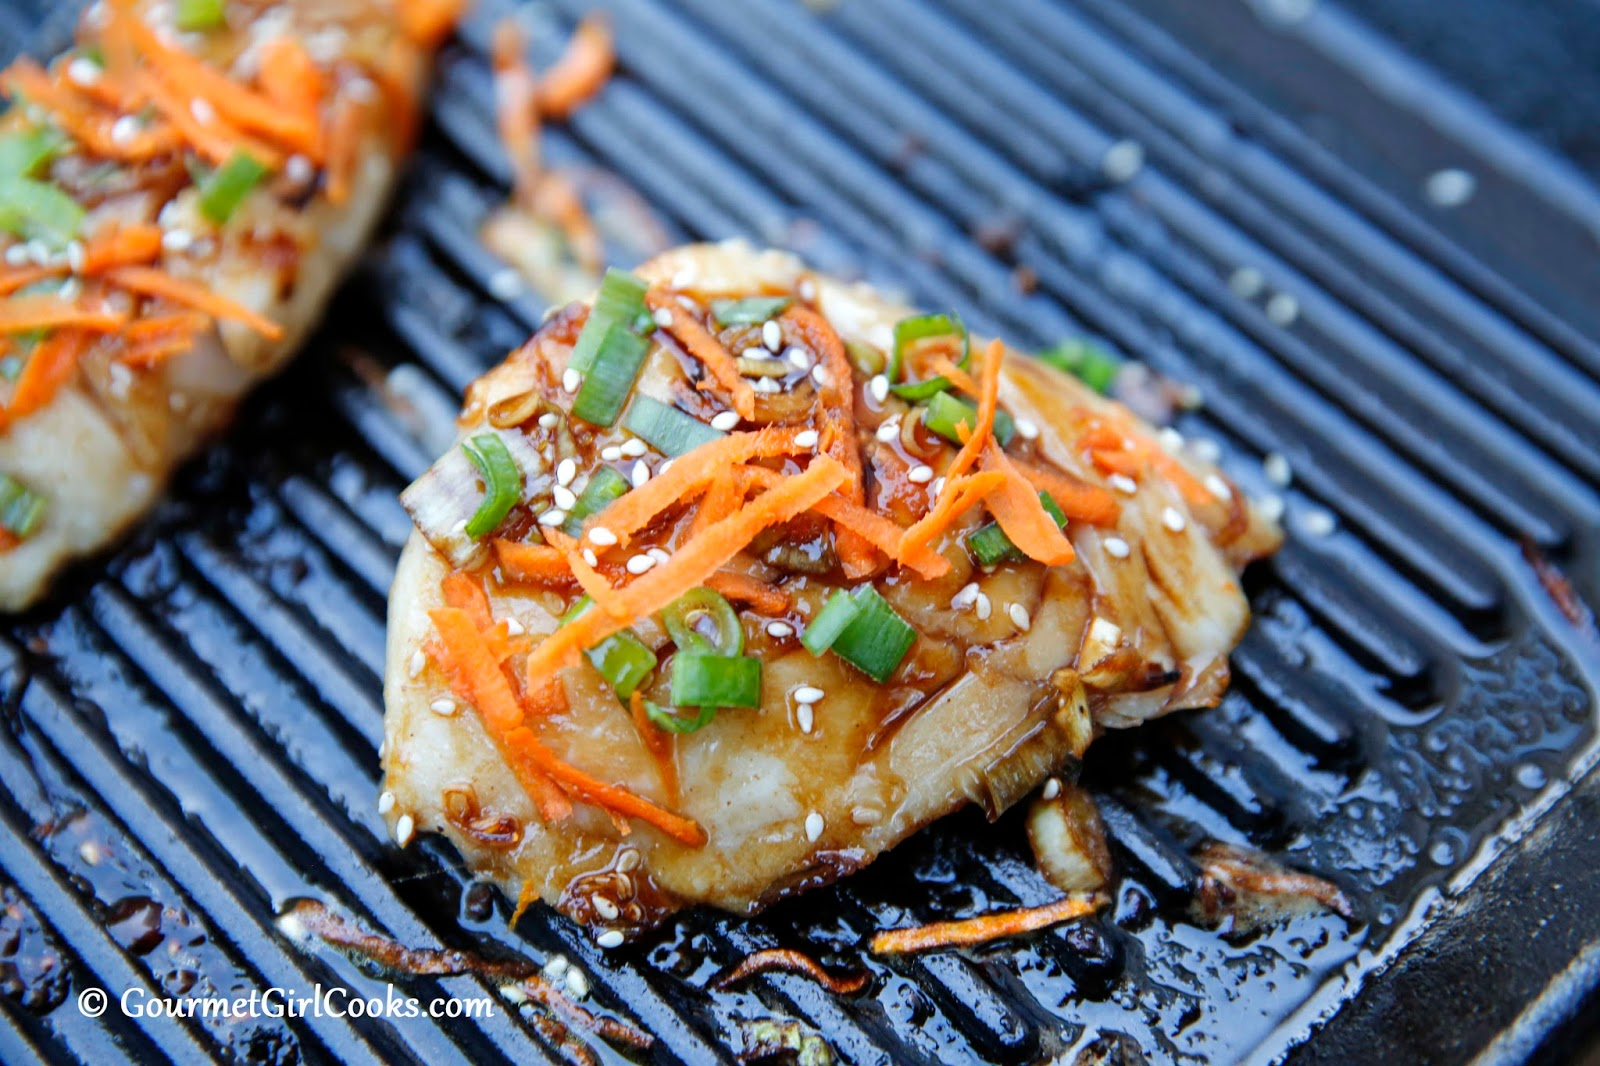 Gourmet Girl Cooks: Grilled Asian Style Wild Alaskan Black Cod